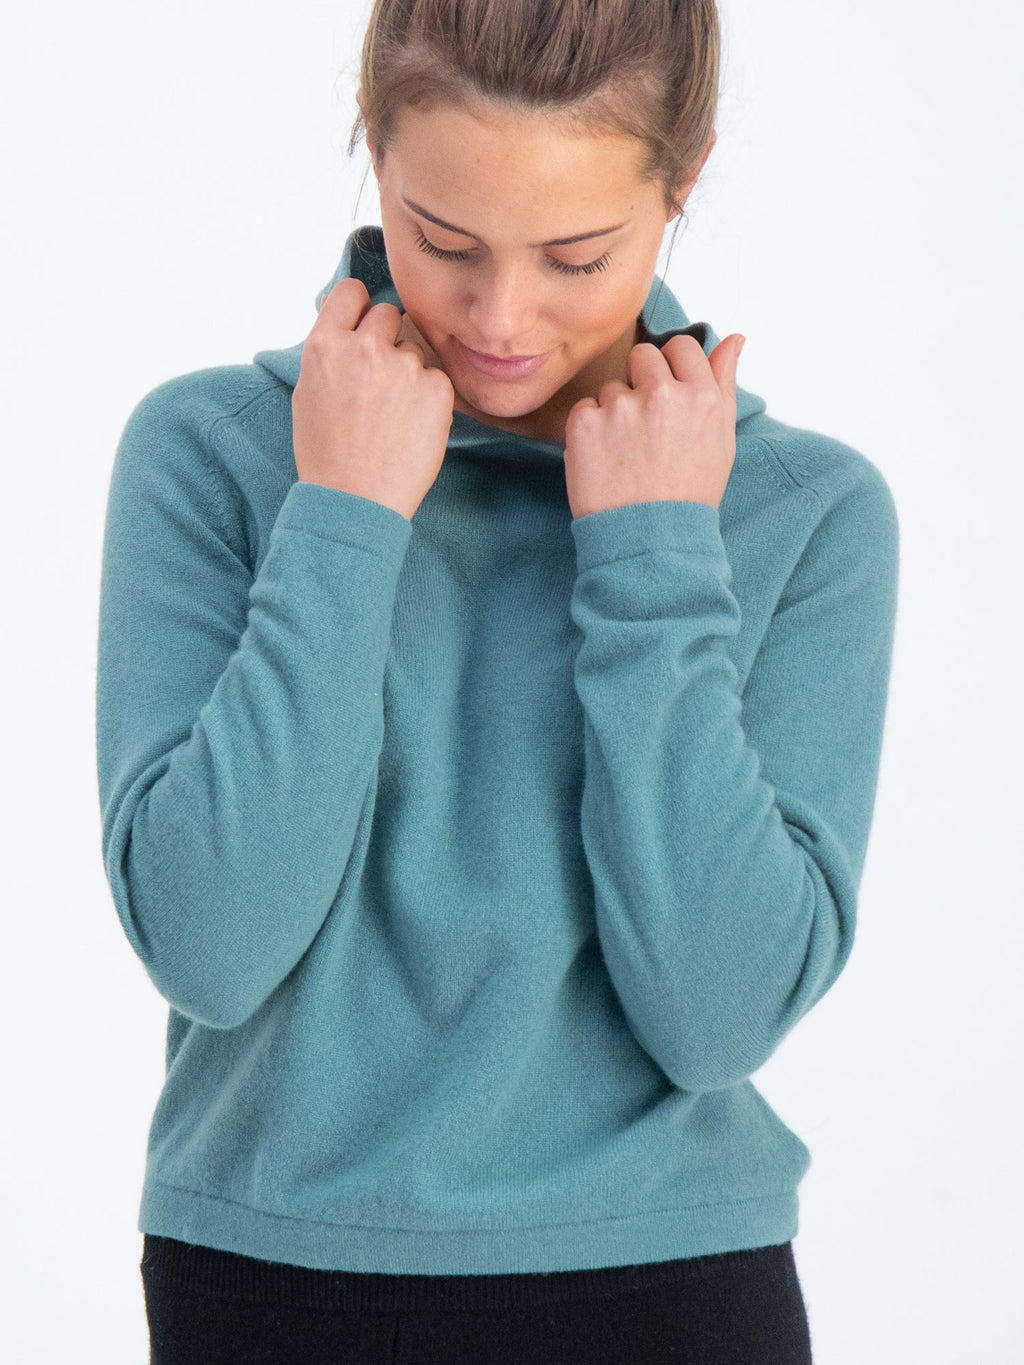 kashmina hoodie arctic blue green cashmere sweater sustainable norwegian design